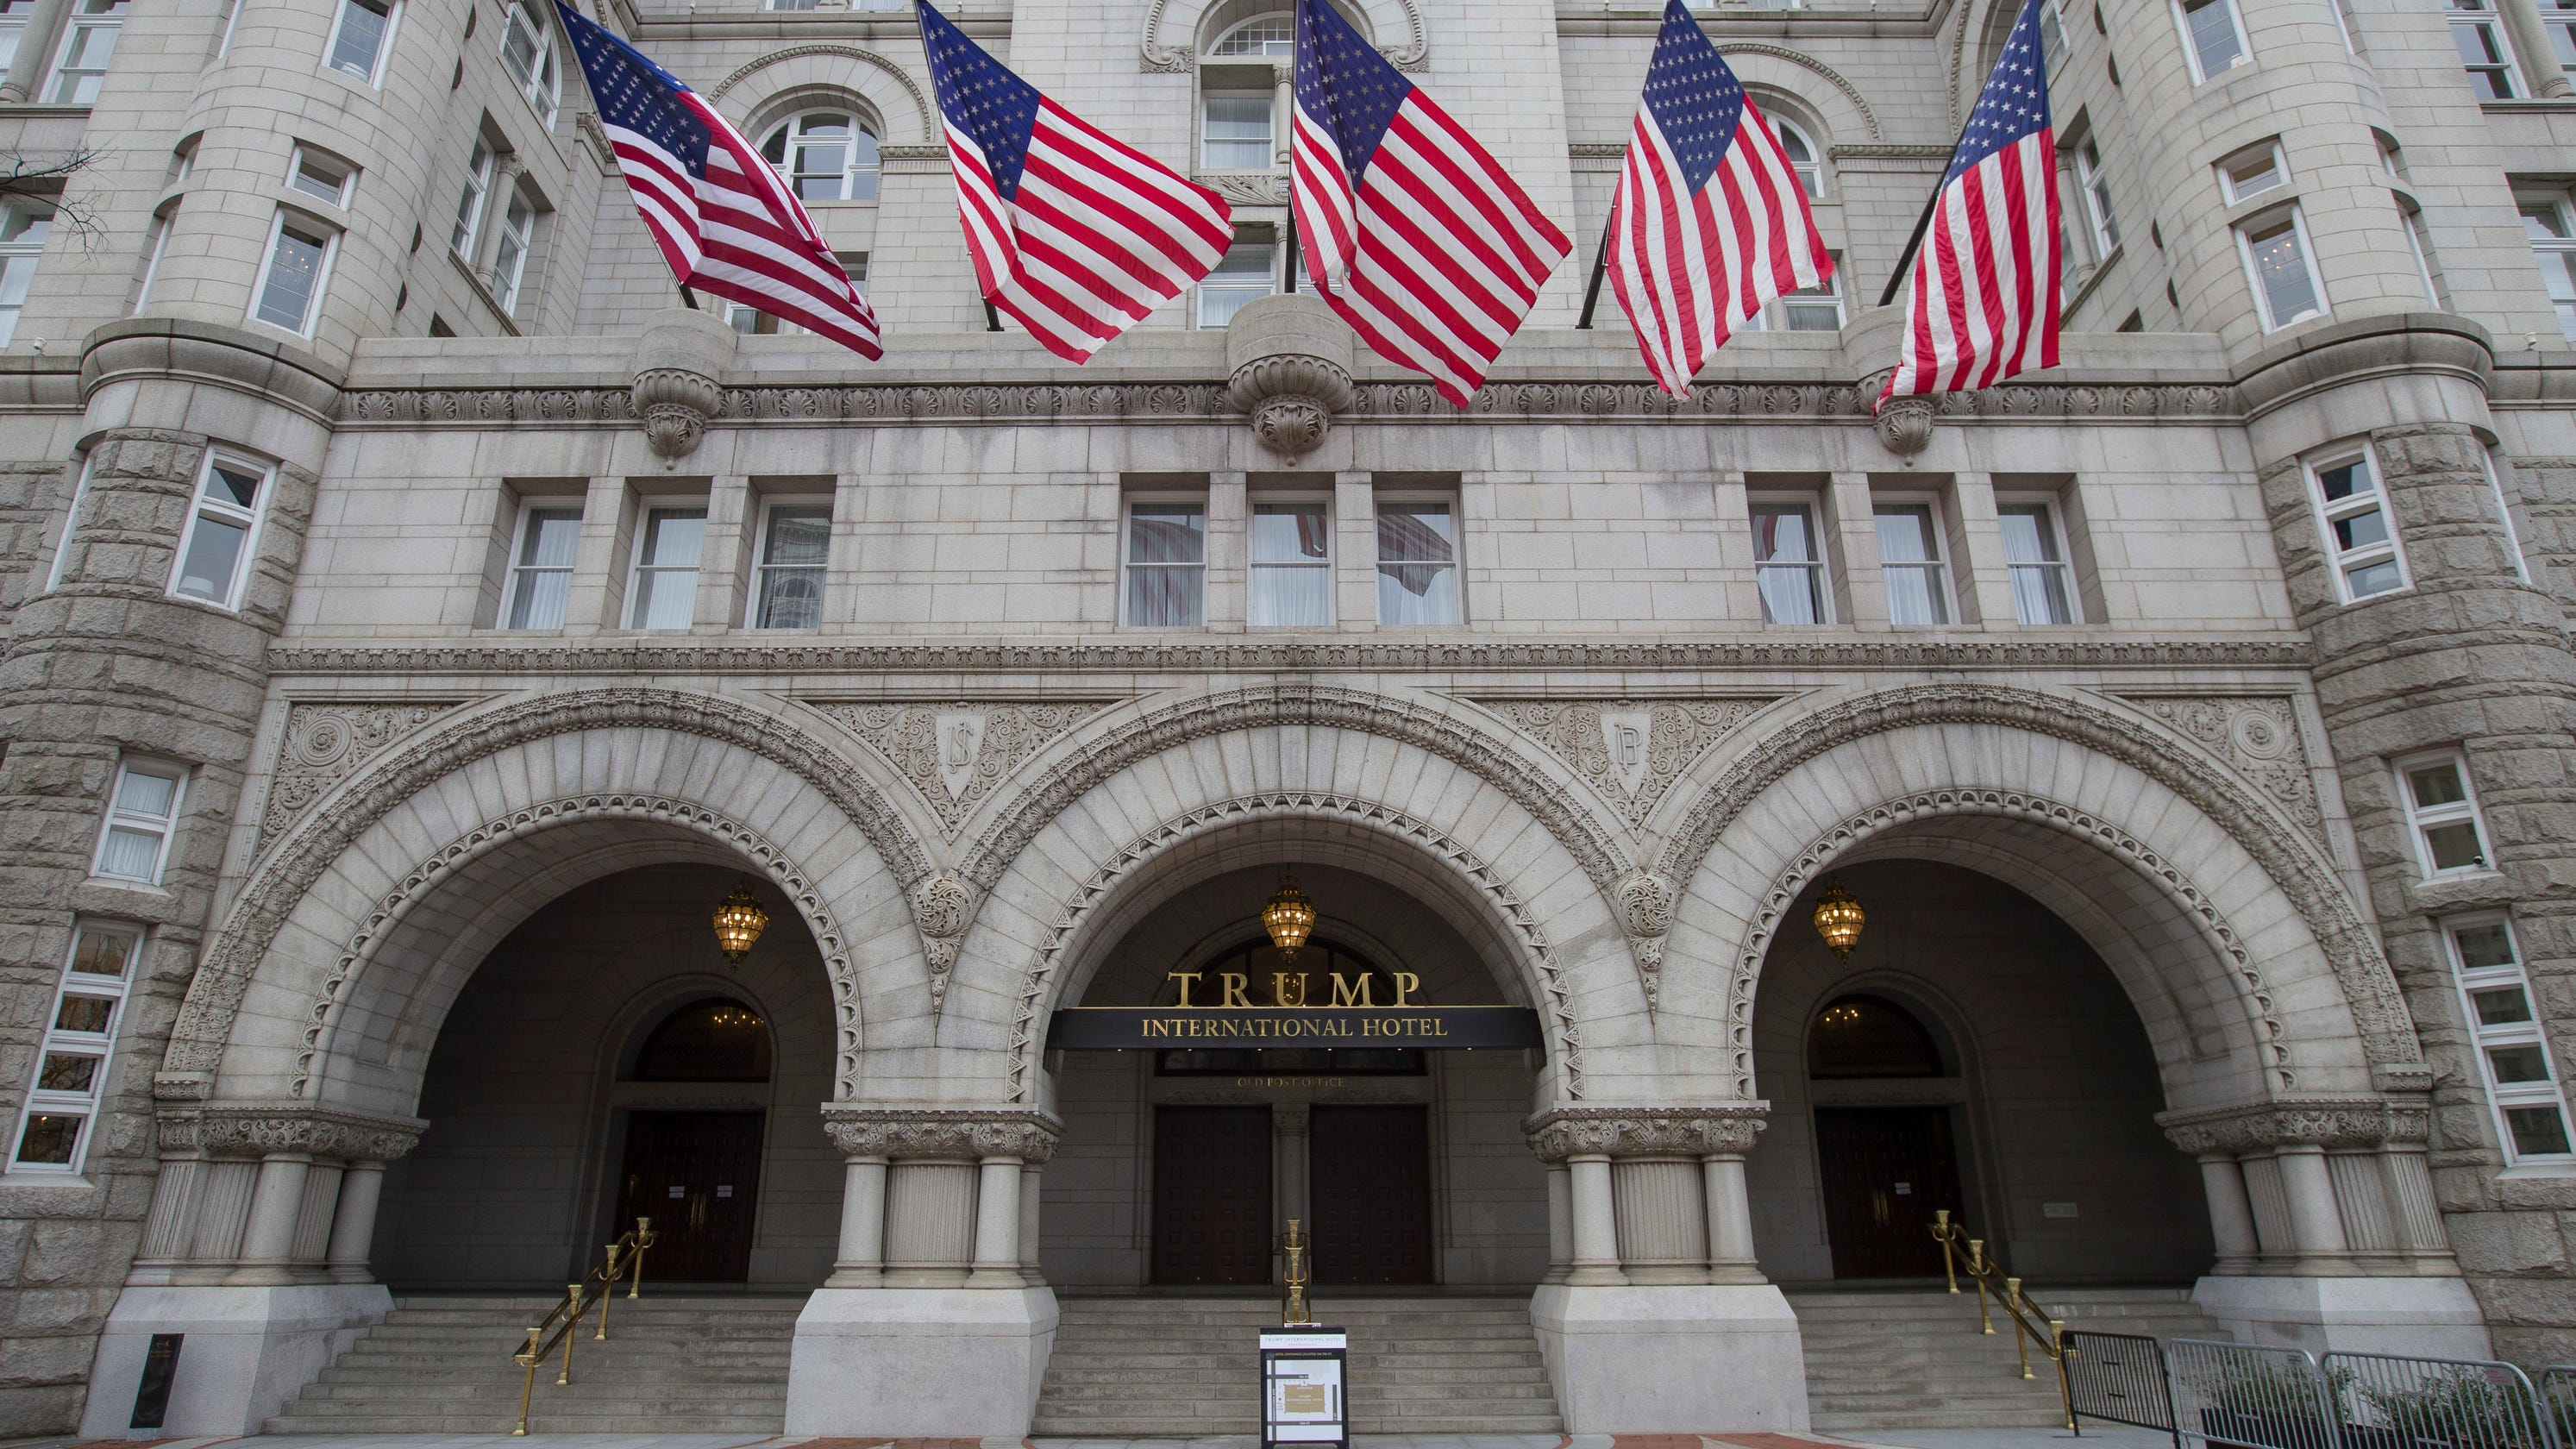 Shutdown spares Old Post Office, located in Trump Hotel